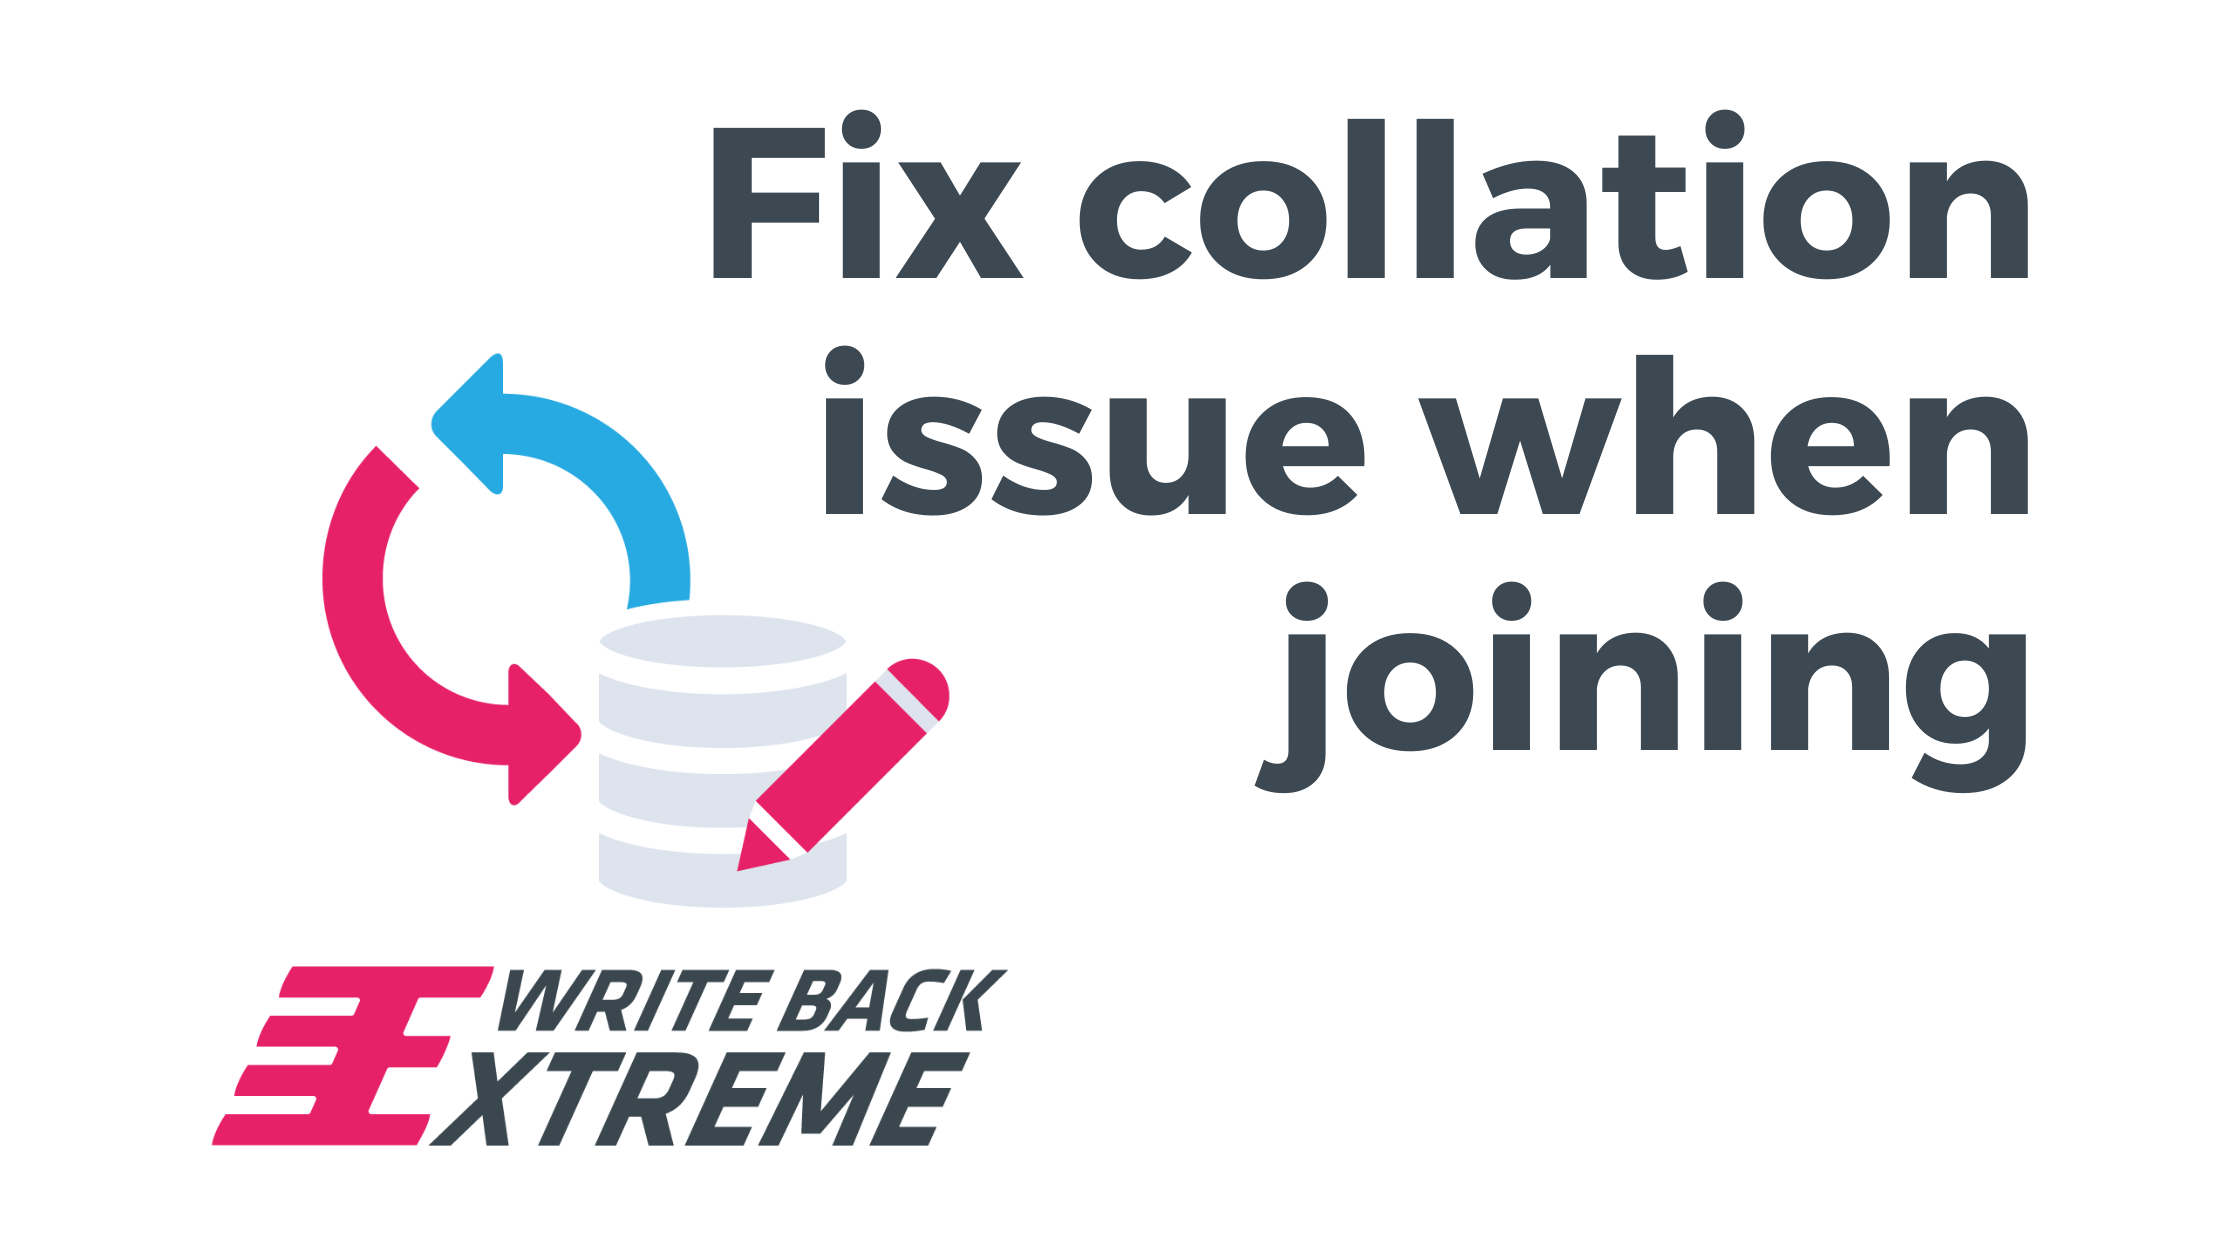 WBE Fix collation when joining